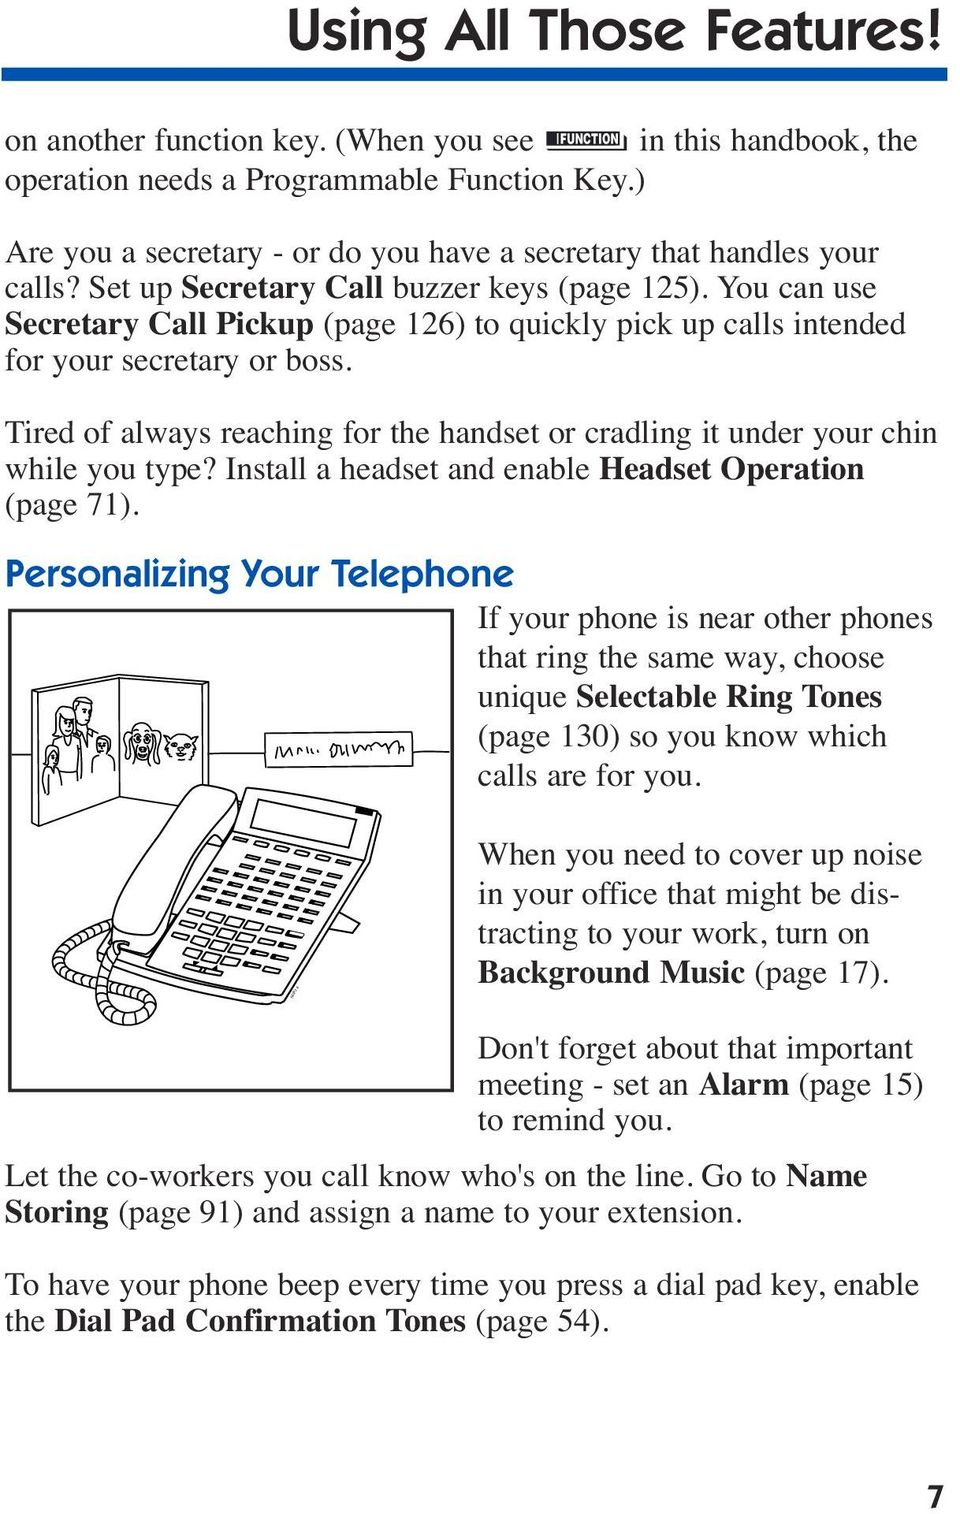 You can use Secretary Call Pickup (page 126) to quickly pick up calls intended for your secretary or boss. Tired of always reaching for the handset or cradling it under your chin while you type?